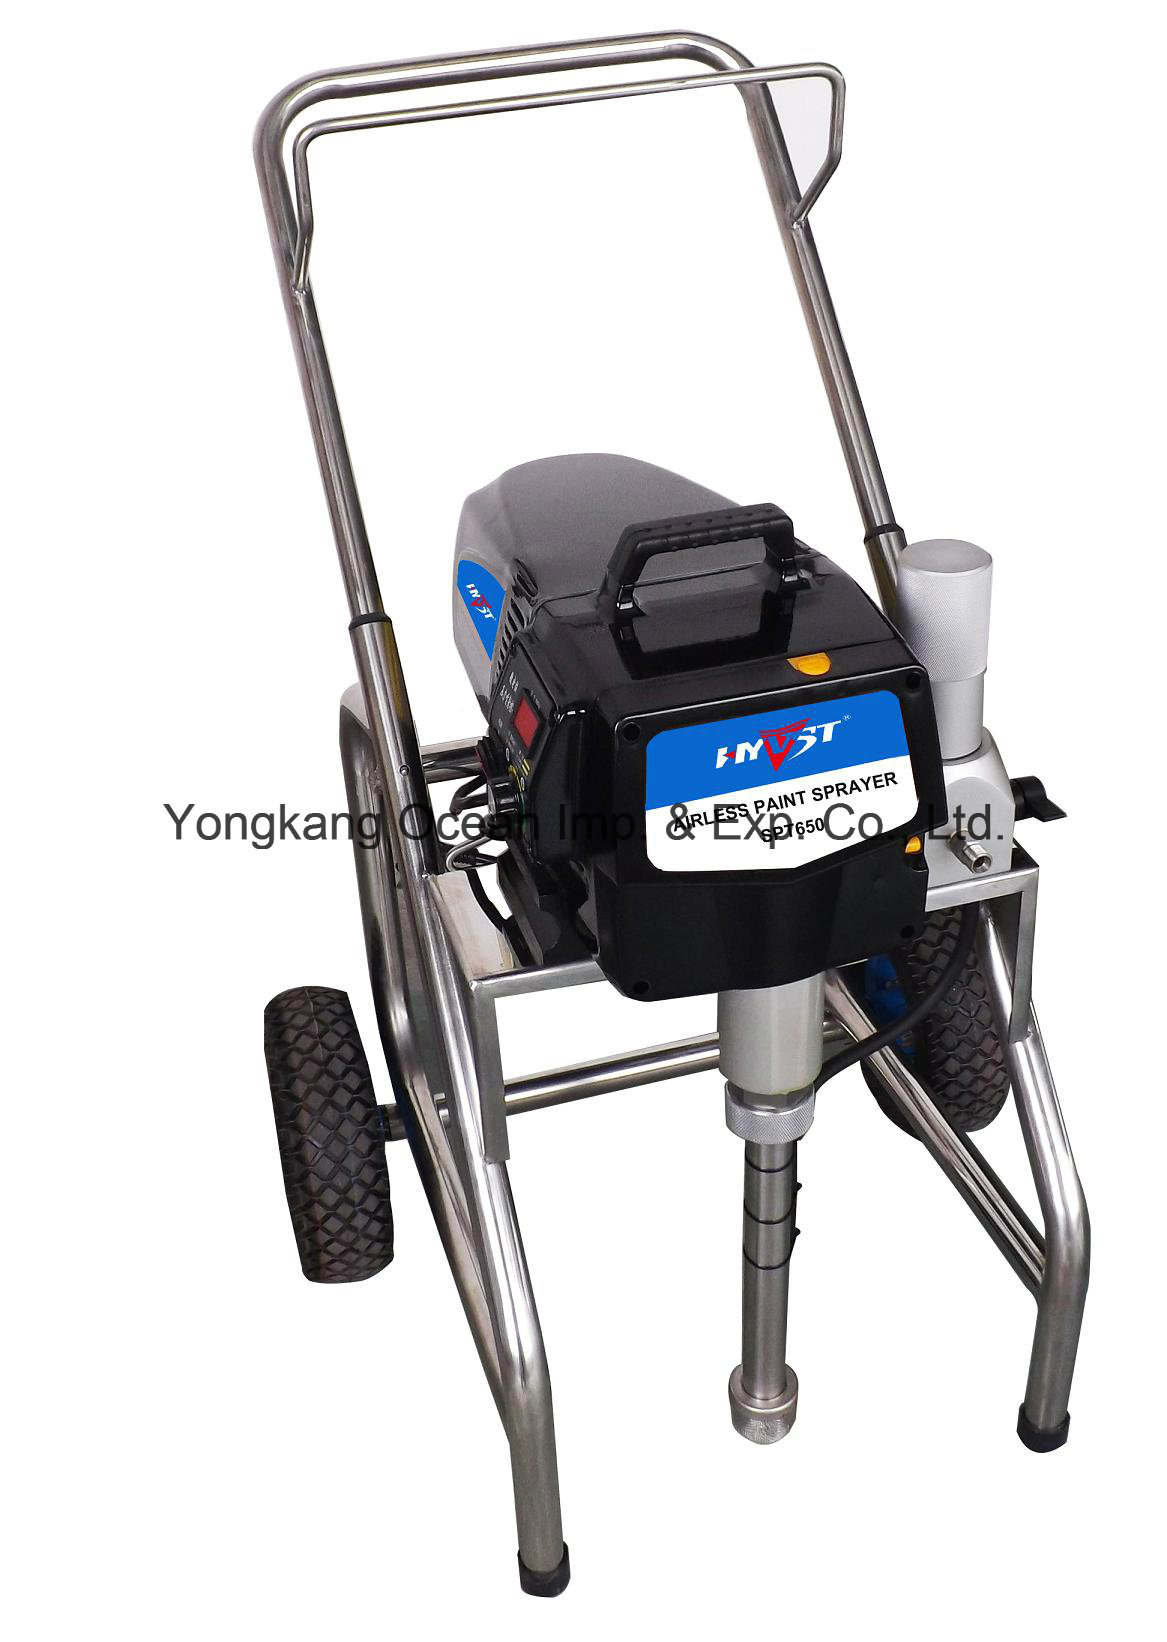 Hyvst Electric High Pressure Airless Paint Sprayer Spt650